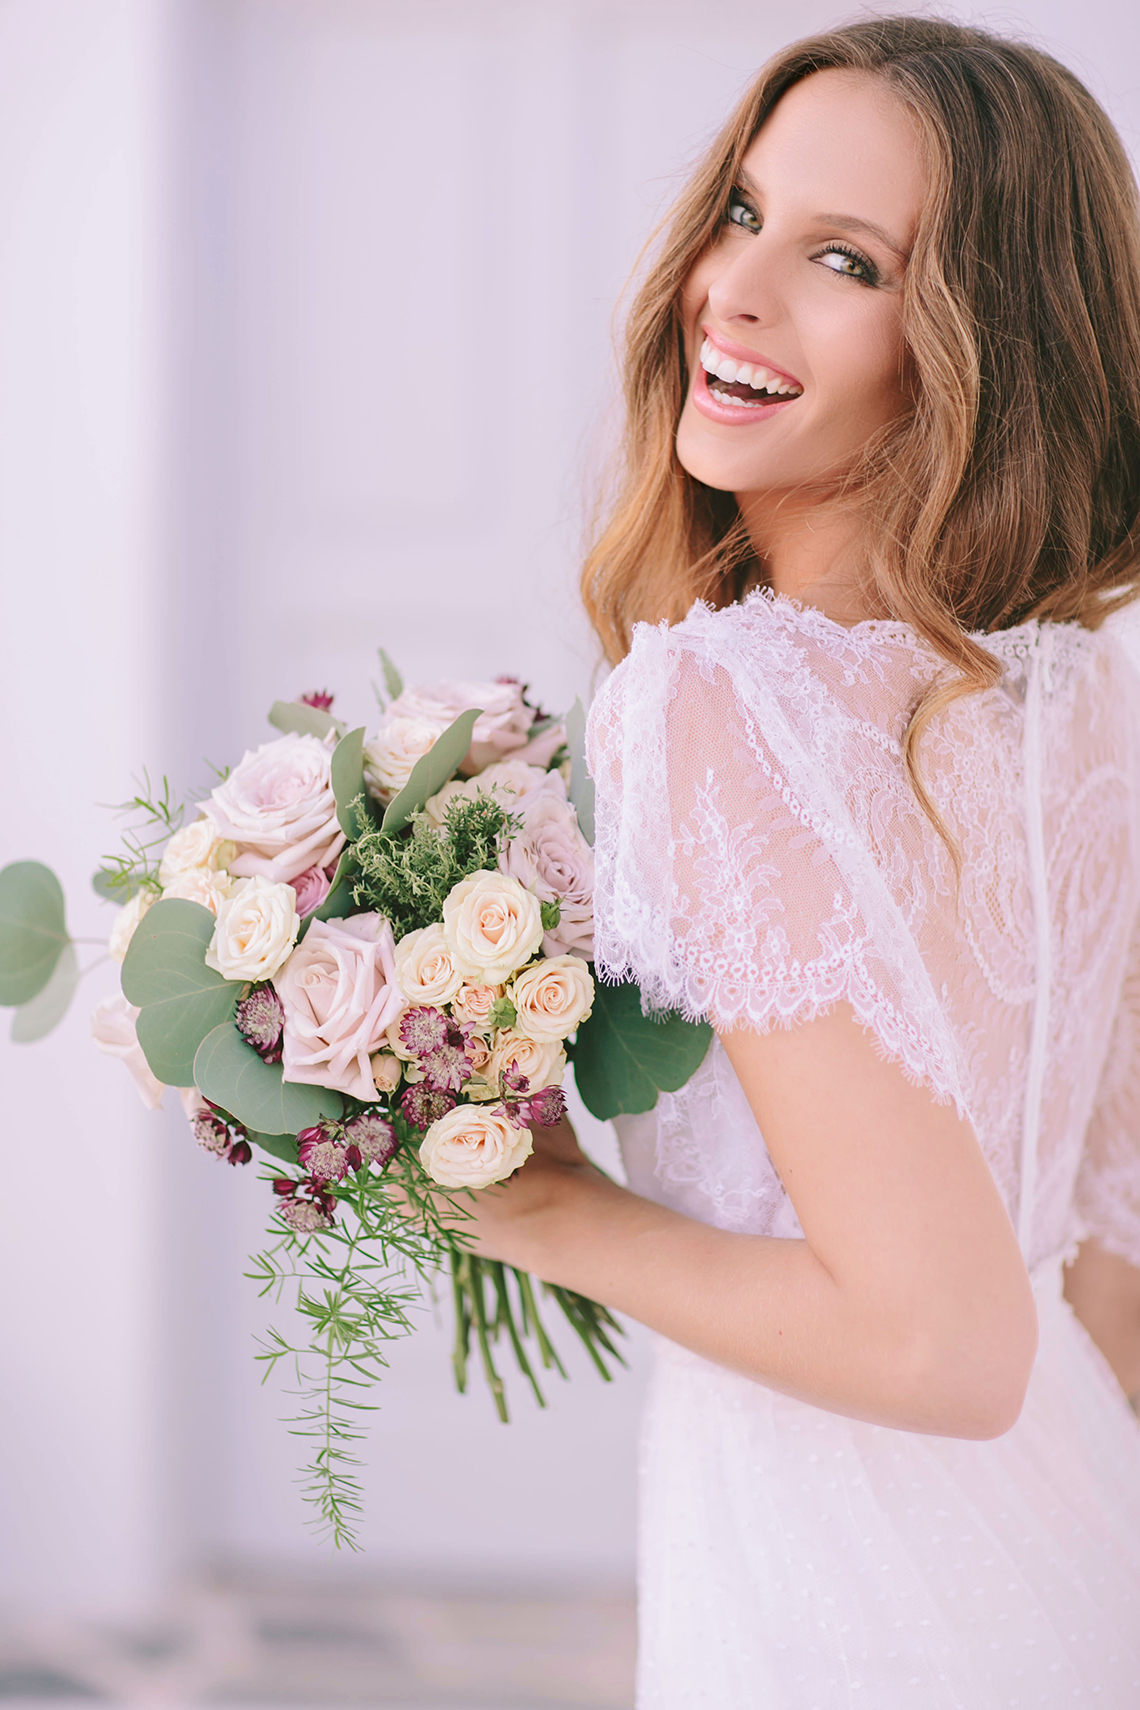 Wedding Inspiration from Greece by George Pahountis 42